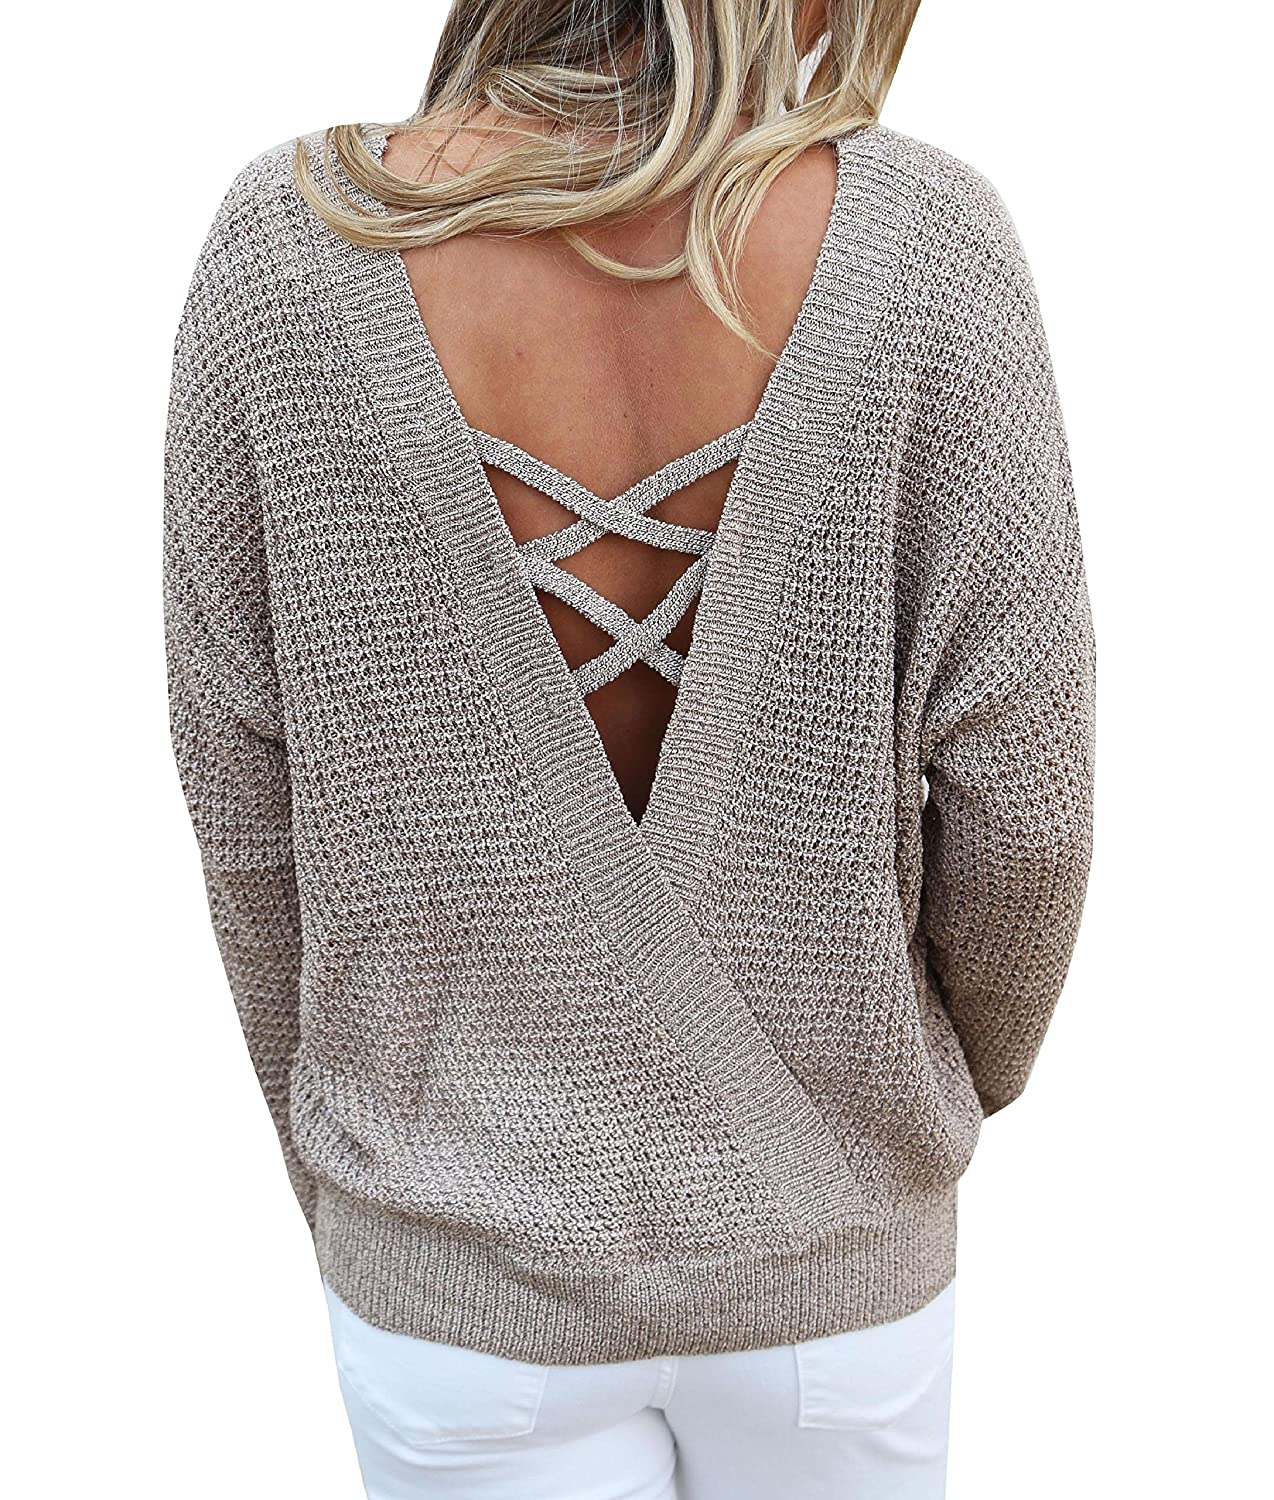 489d8f149cf488 Womens Open Back Sweater Backless Criss Cross Pullover Sweaters Cable Knit  Oversized Fall Jumper Tops at Amazon Women's Clothing store: